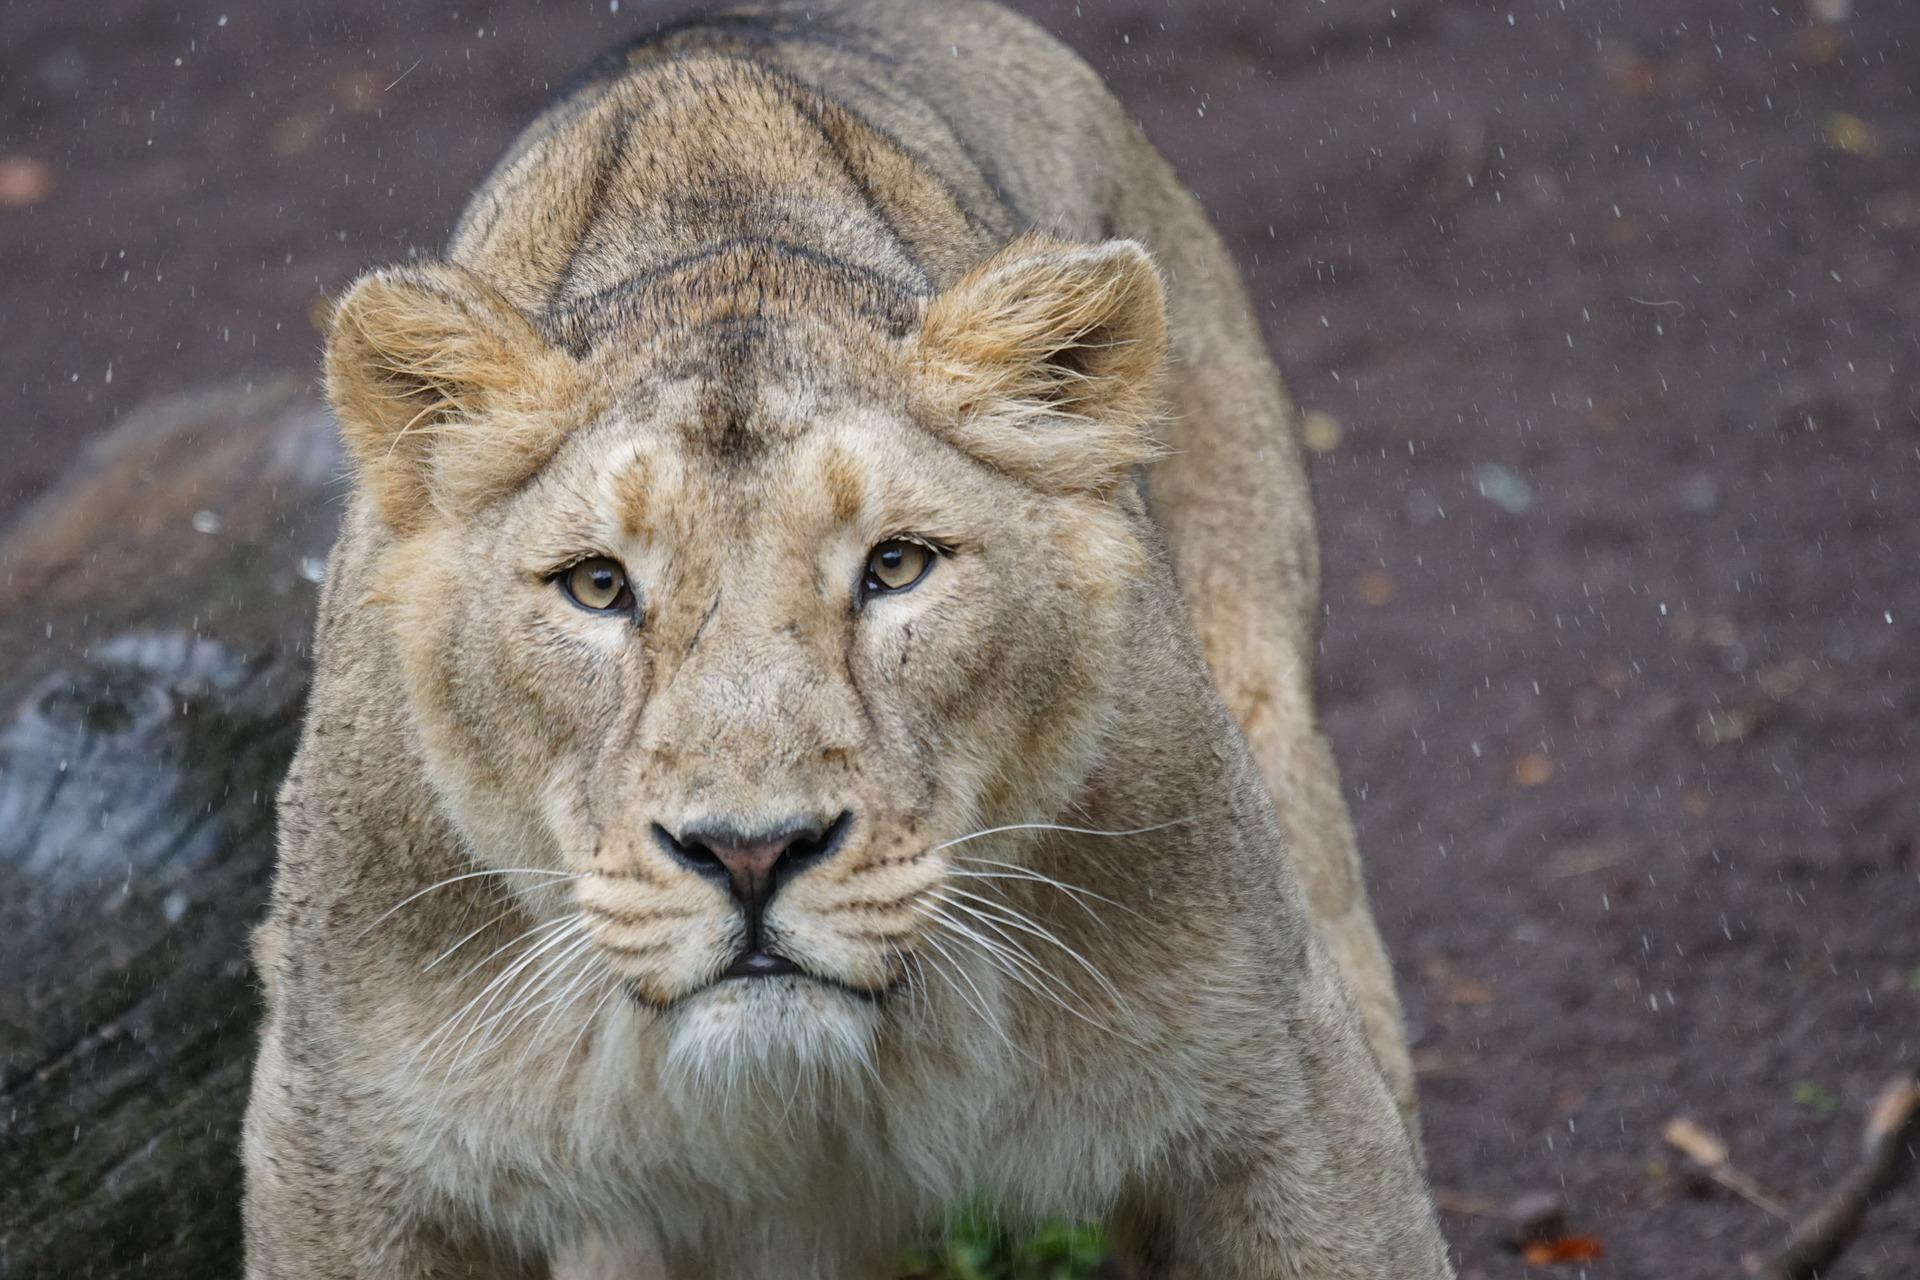 Lioness Sees Its Master 7 Years Later - Her Reaction Is Unbelievable